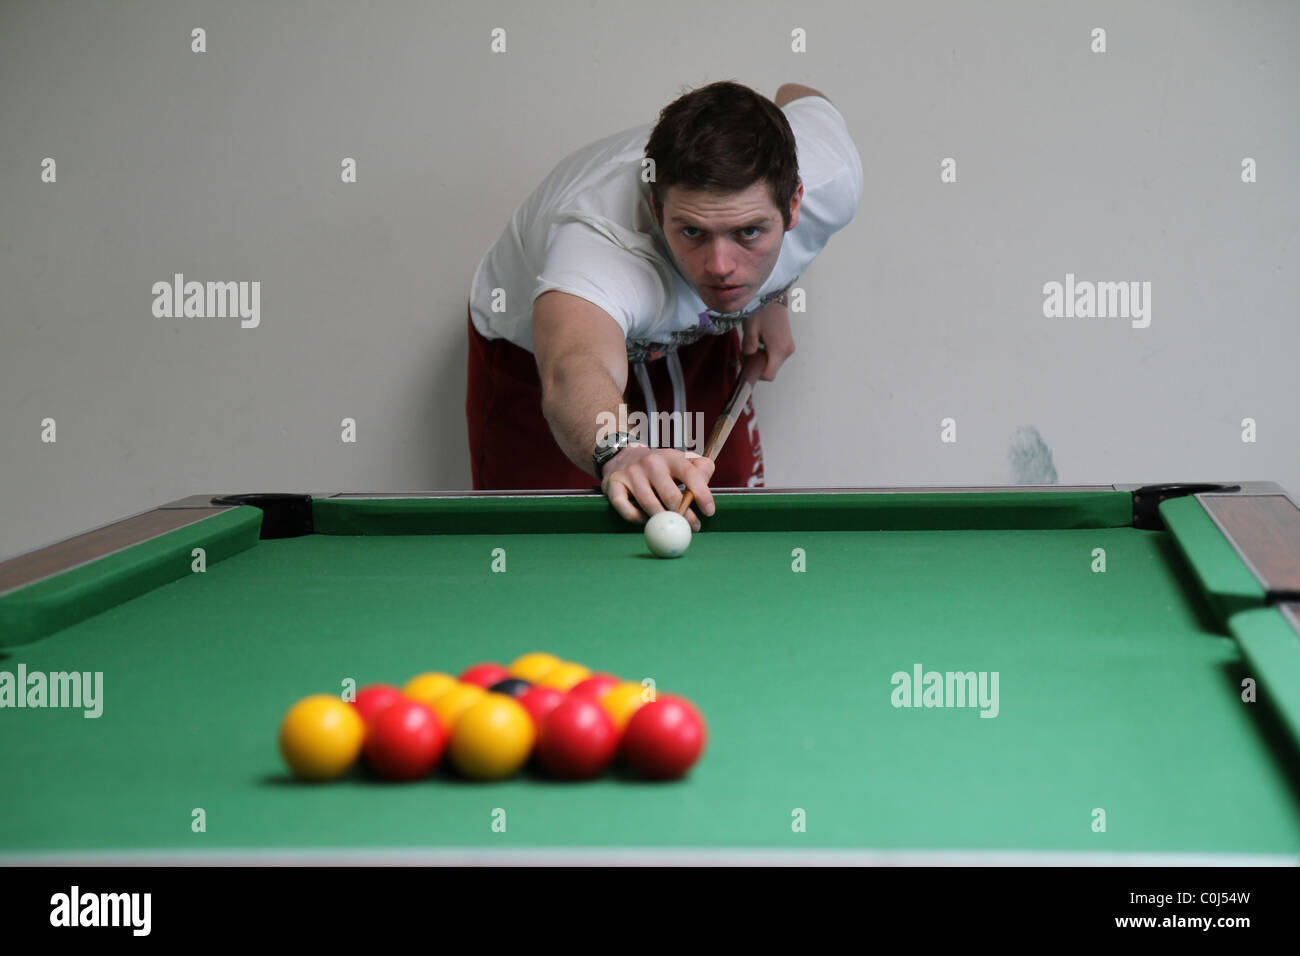 Man playing pool, billiards taking the brake, - Stock Image